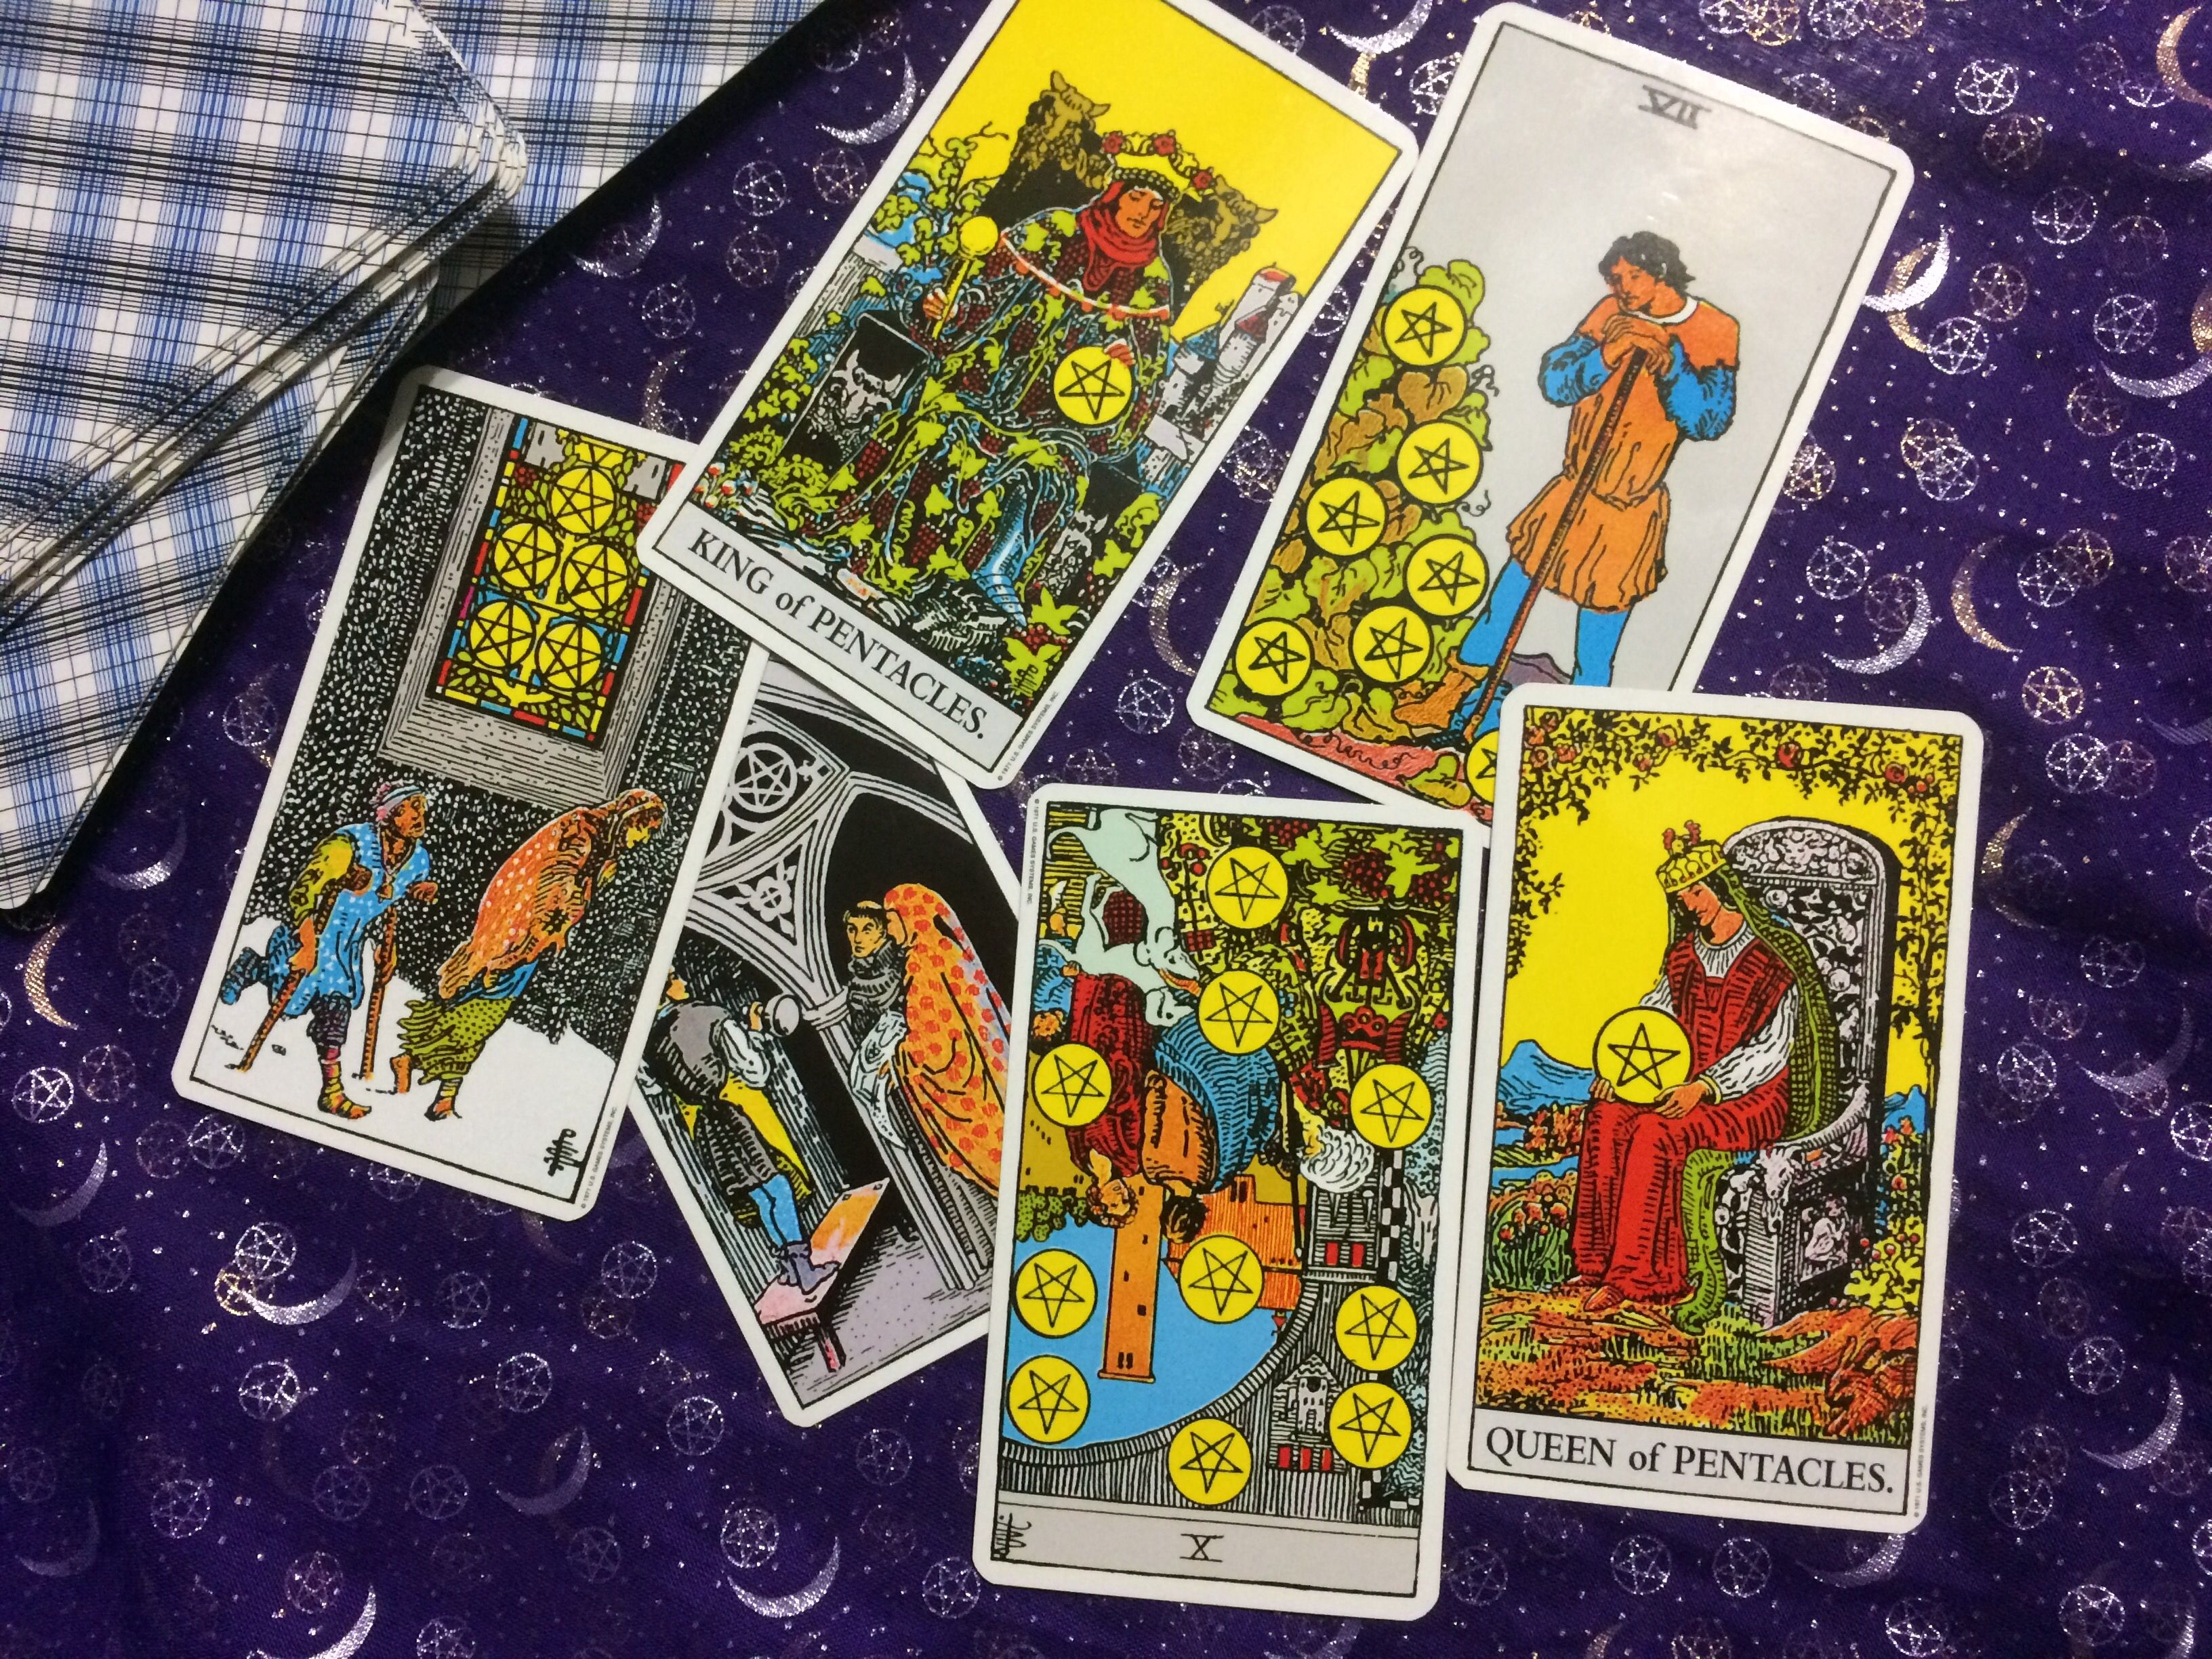 What Do the Pentacles Mean in Tarot?